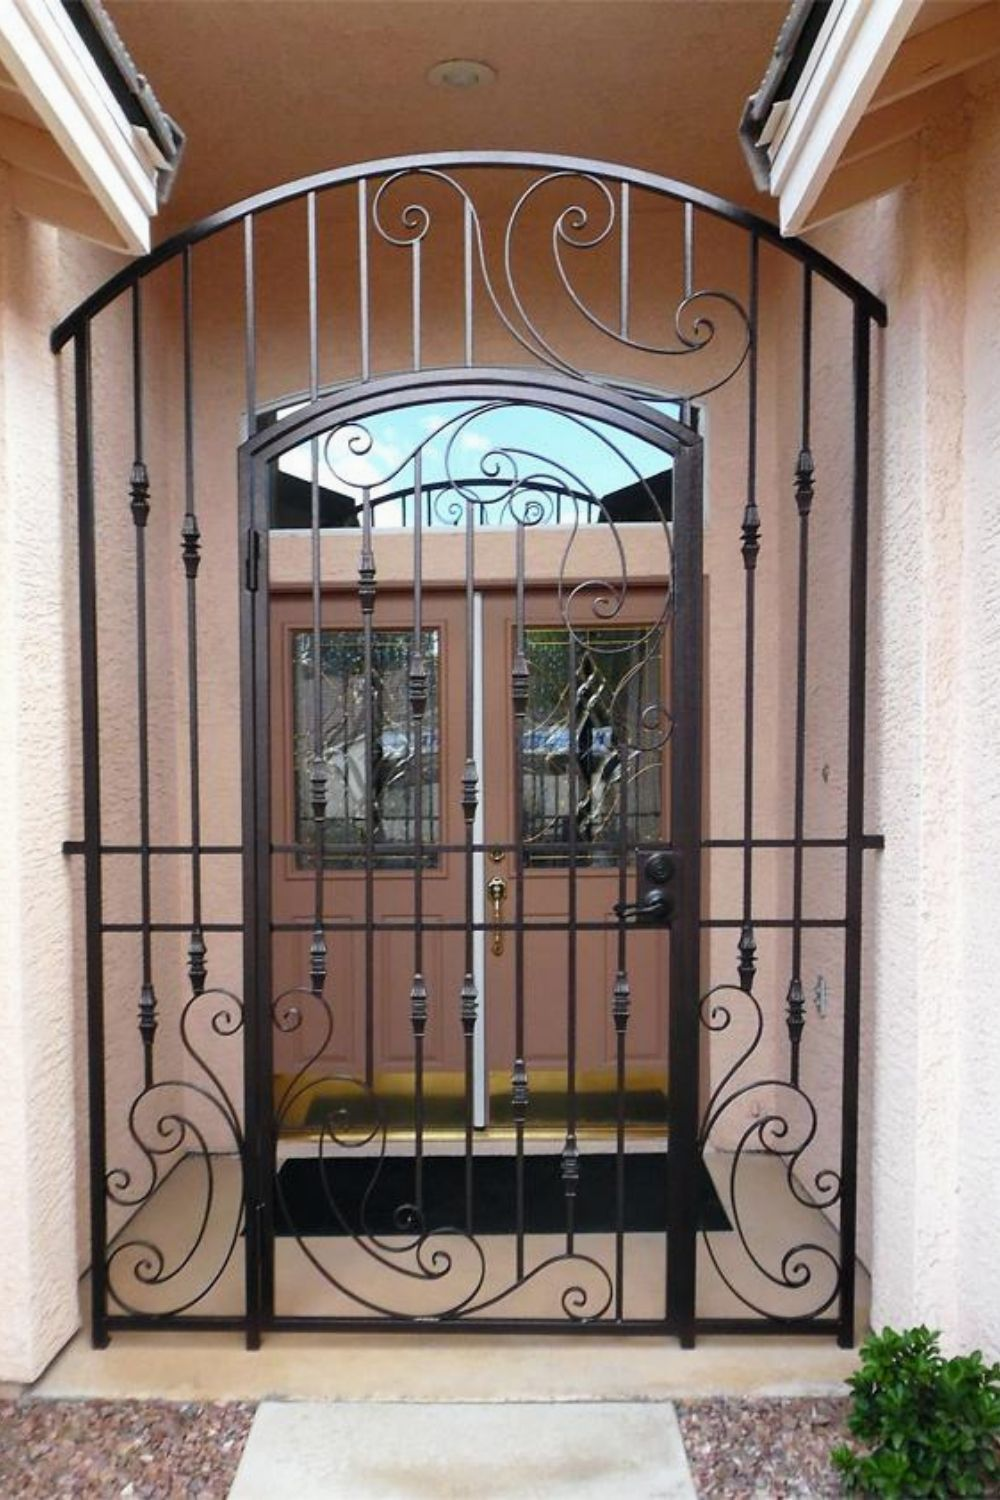 Most Unique Iron Doors Loft Everything You Need To Know 130 Modern Irondoors Design Homedesignideas Iron Doors Security Door Design Wrought Iron Doors